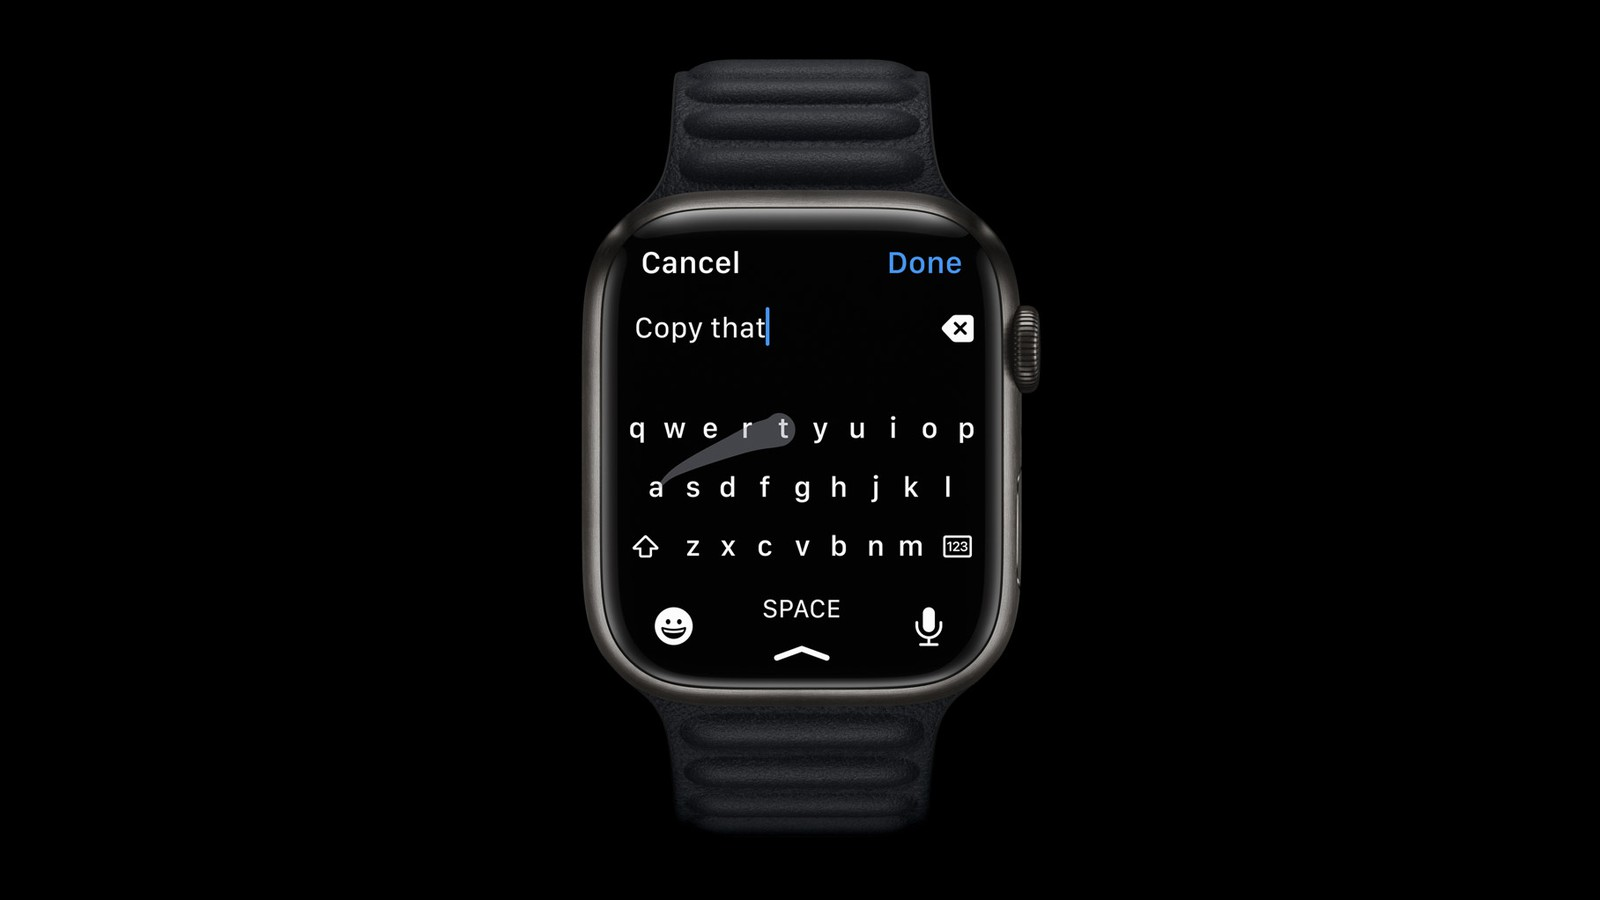 Apple Watch Series 7's larger screen allows for a full ...